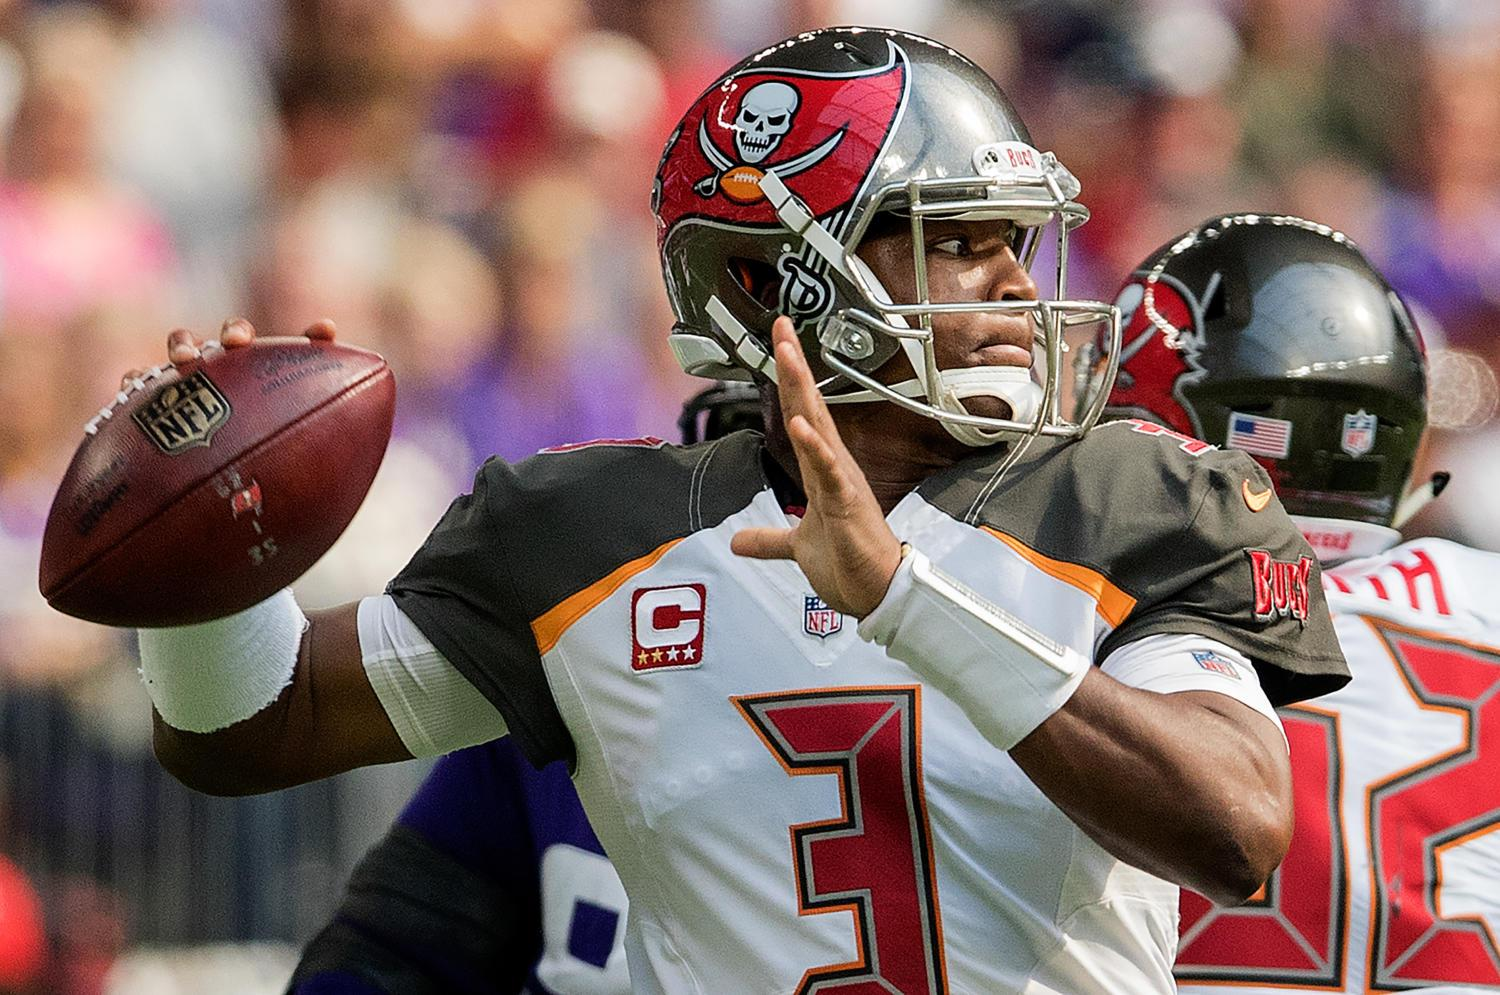 Tampa Bay quarterback Jameis Winston (3) attempts a pass in the first quarter against the Minnesota Vikings at US Bank Stadium in Minneapolis on Sunday, Sept. 24, 2017. The Vikings won, 34-17. (Carlos Gonzalez/Minneapolis Star Tribune/TNS)